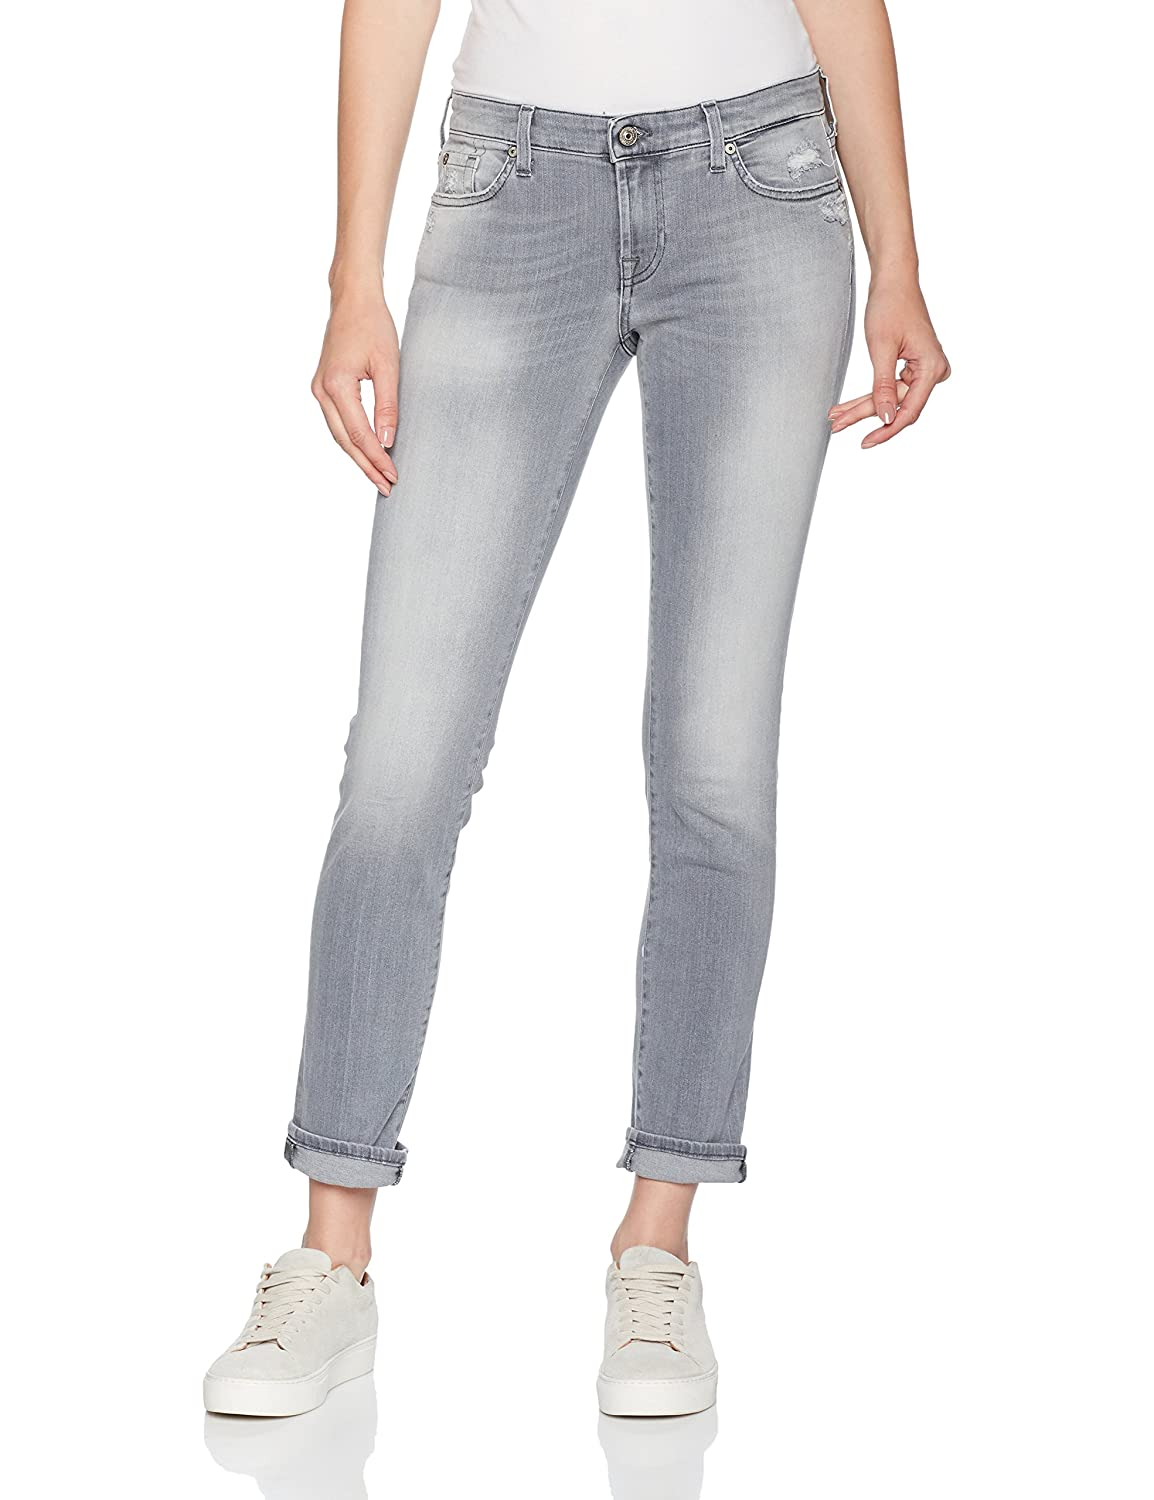 TALLA 25W / 30L. 7 For All Mankind Pyper Vaqueros Slim para Mujer